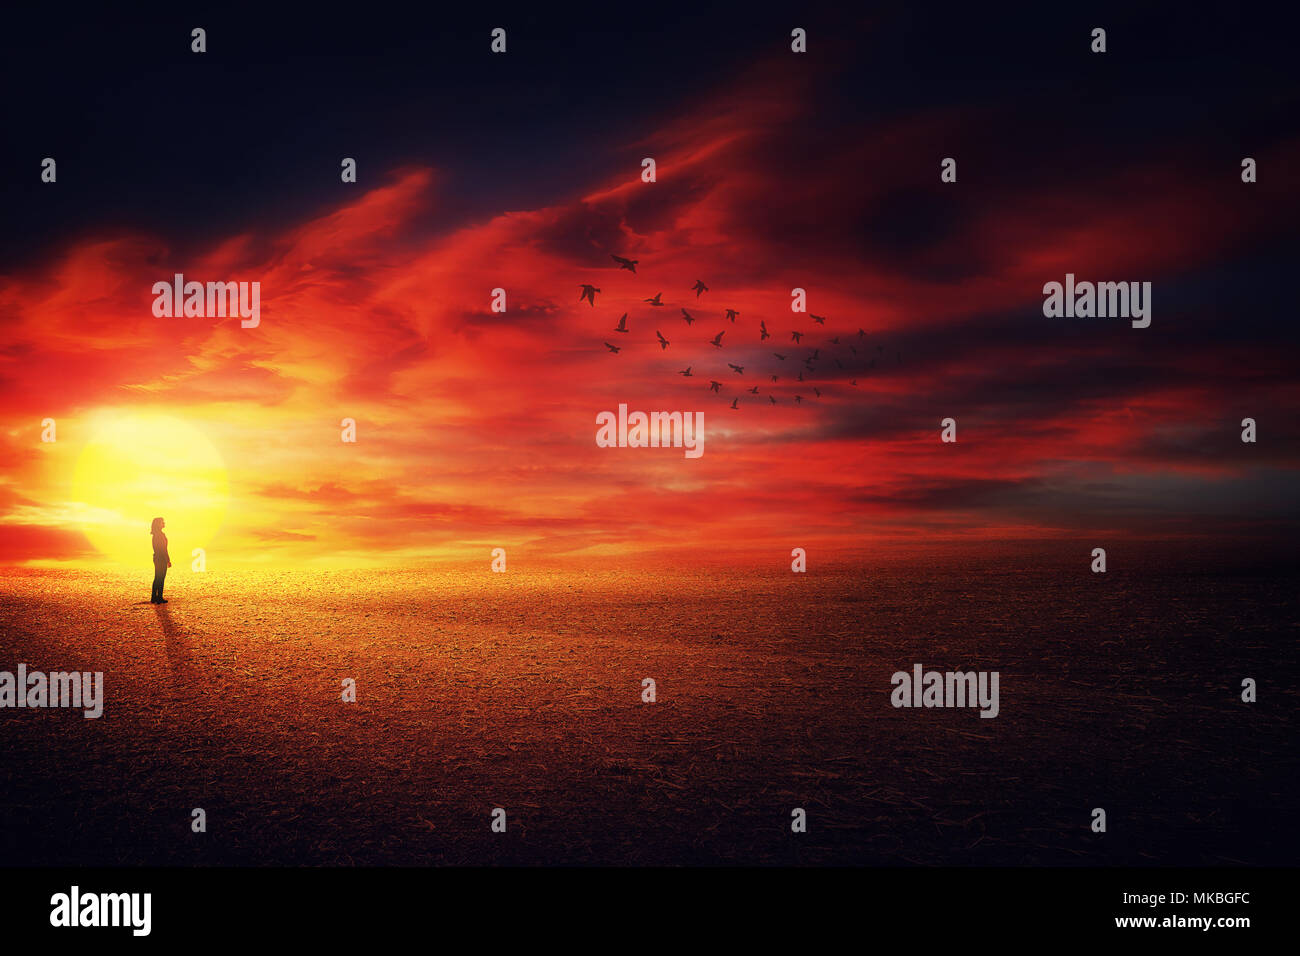 Surreal scenery view as a girl silhouette on the beautiful sunset background watching at a flock of birds flying up in the sky. Life journey concept. - Stock Image